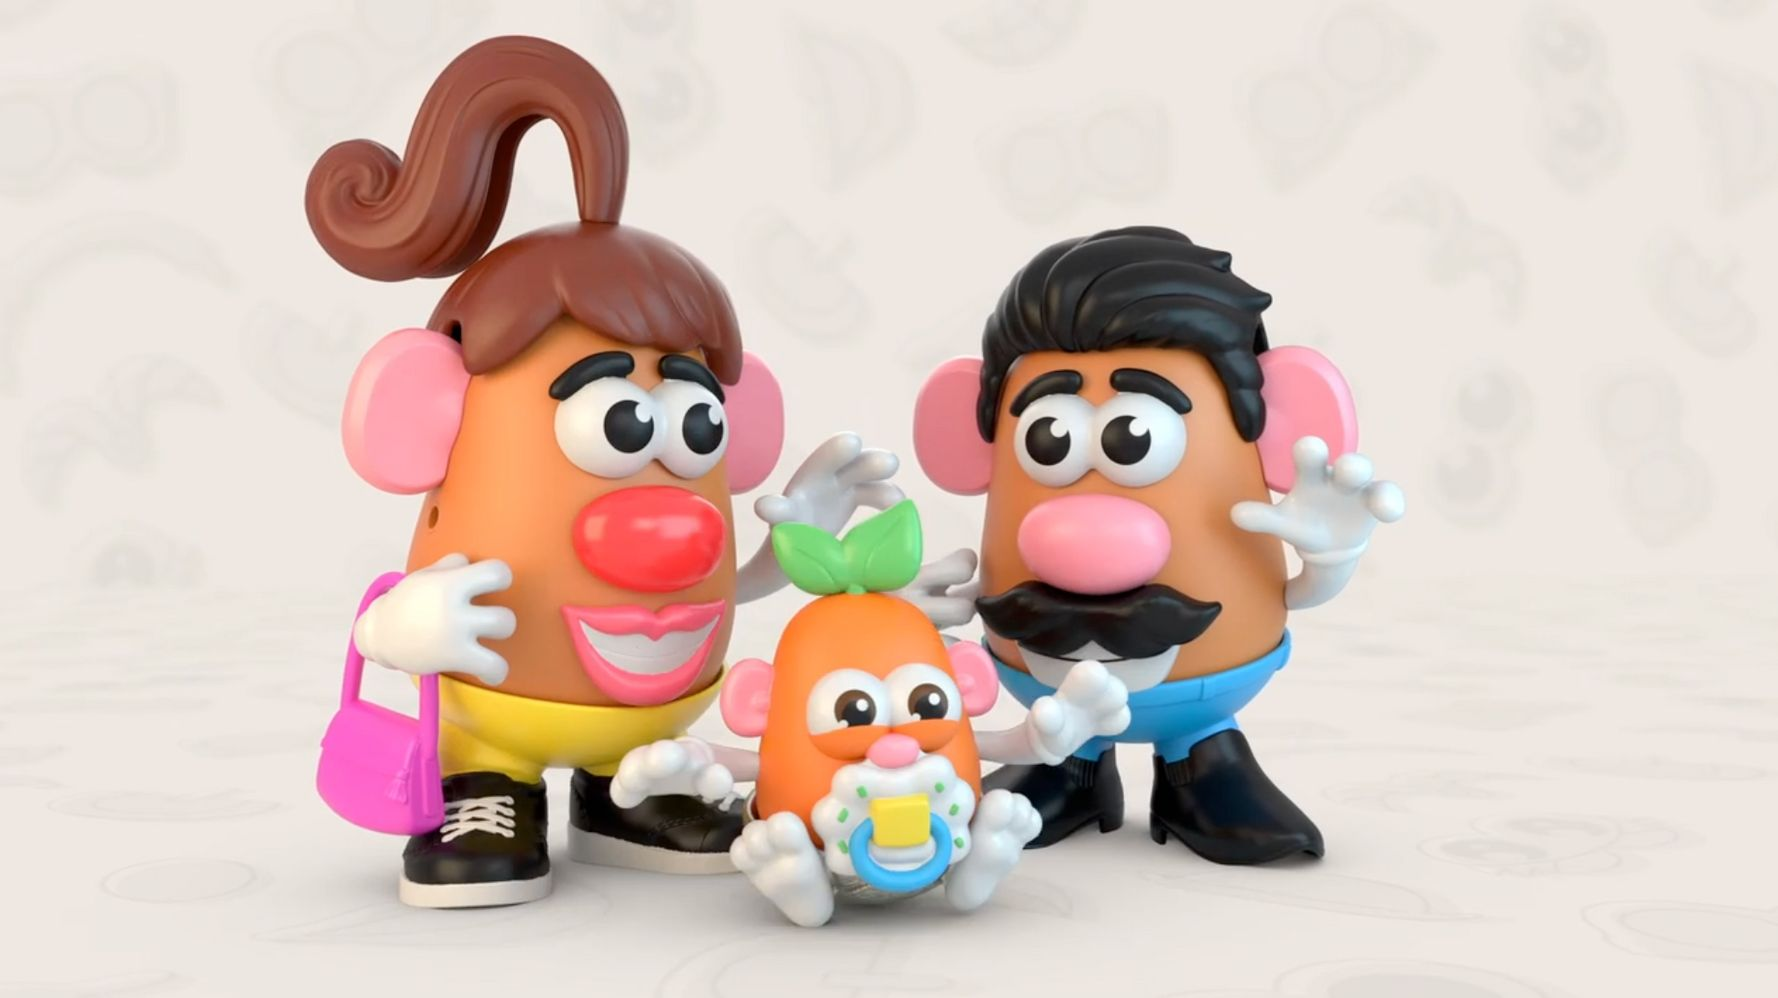 Iconic Potato Head Toys Get Gender-Neutral Rebrand